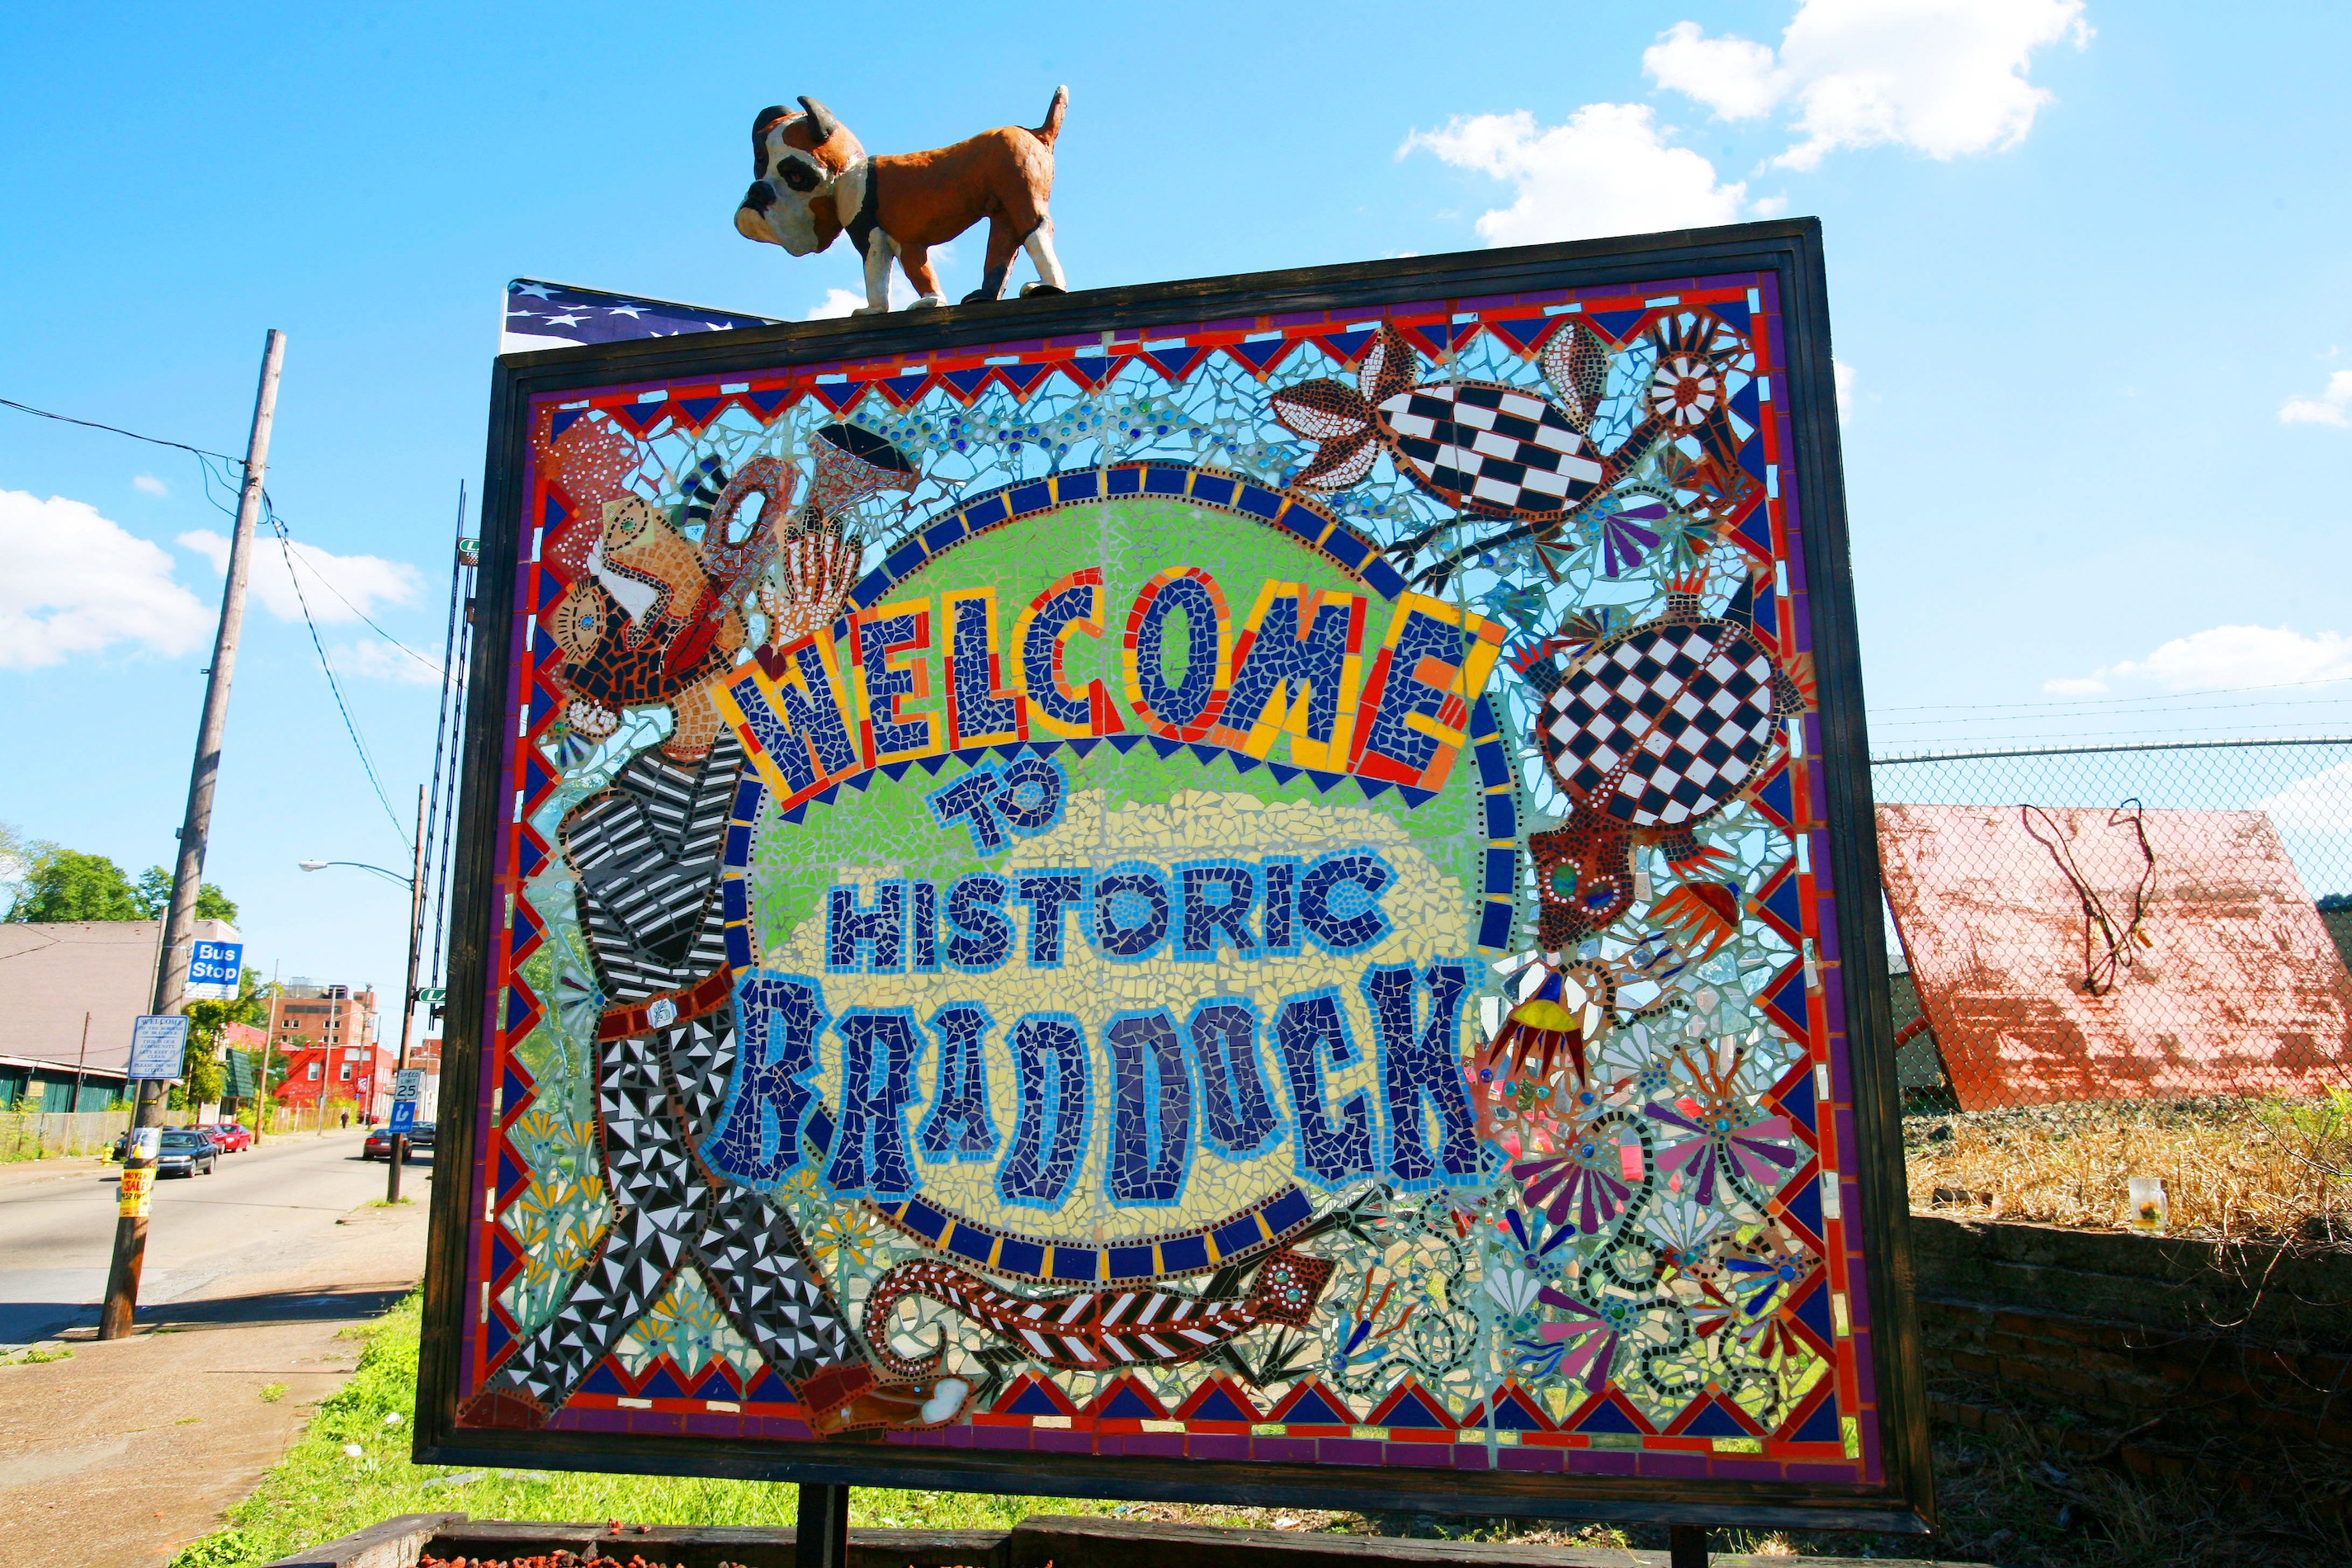 Braddock Welcome sign by James Simon. Photo by Heather Mull.